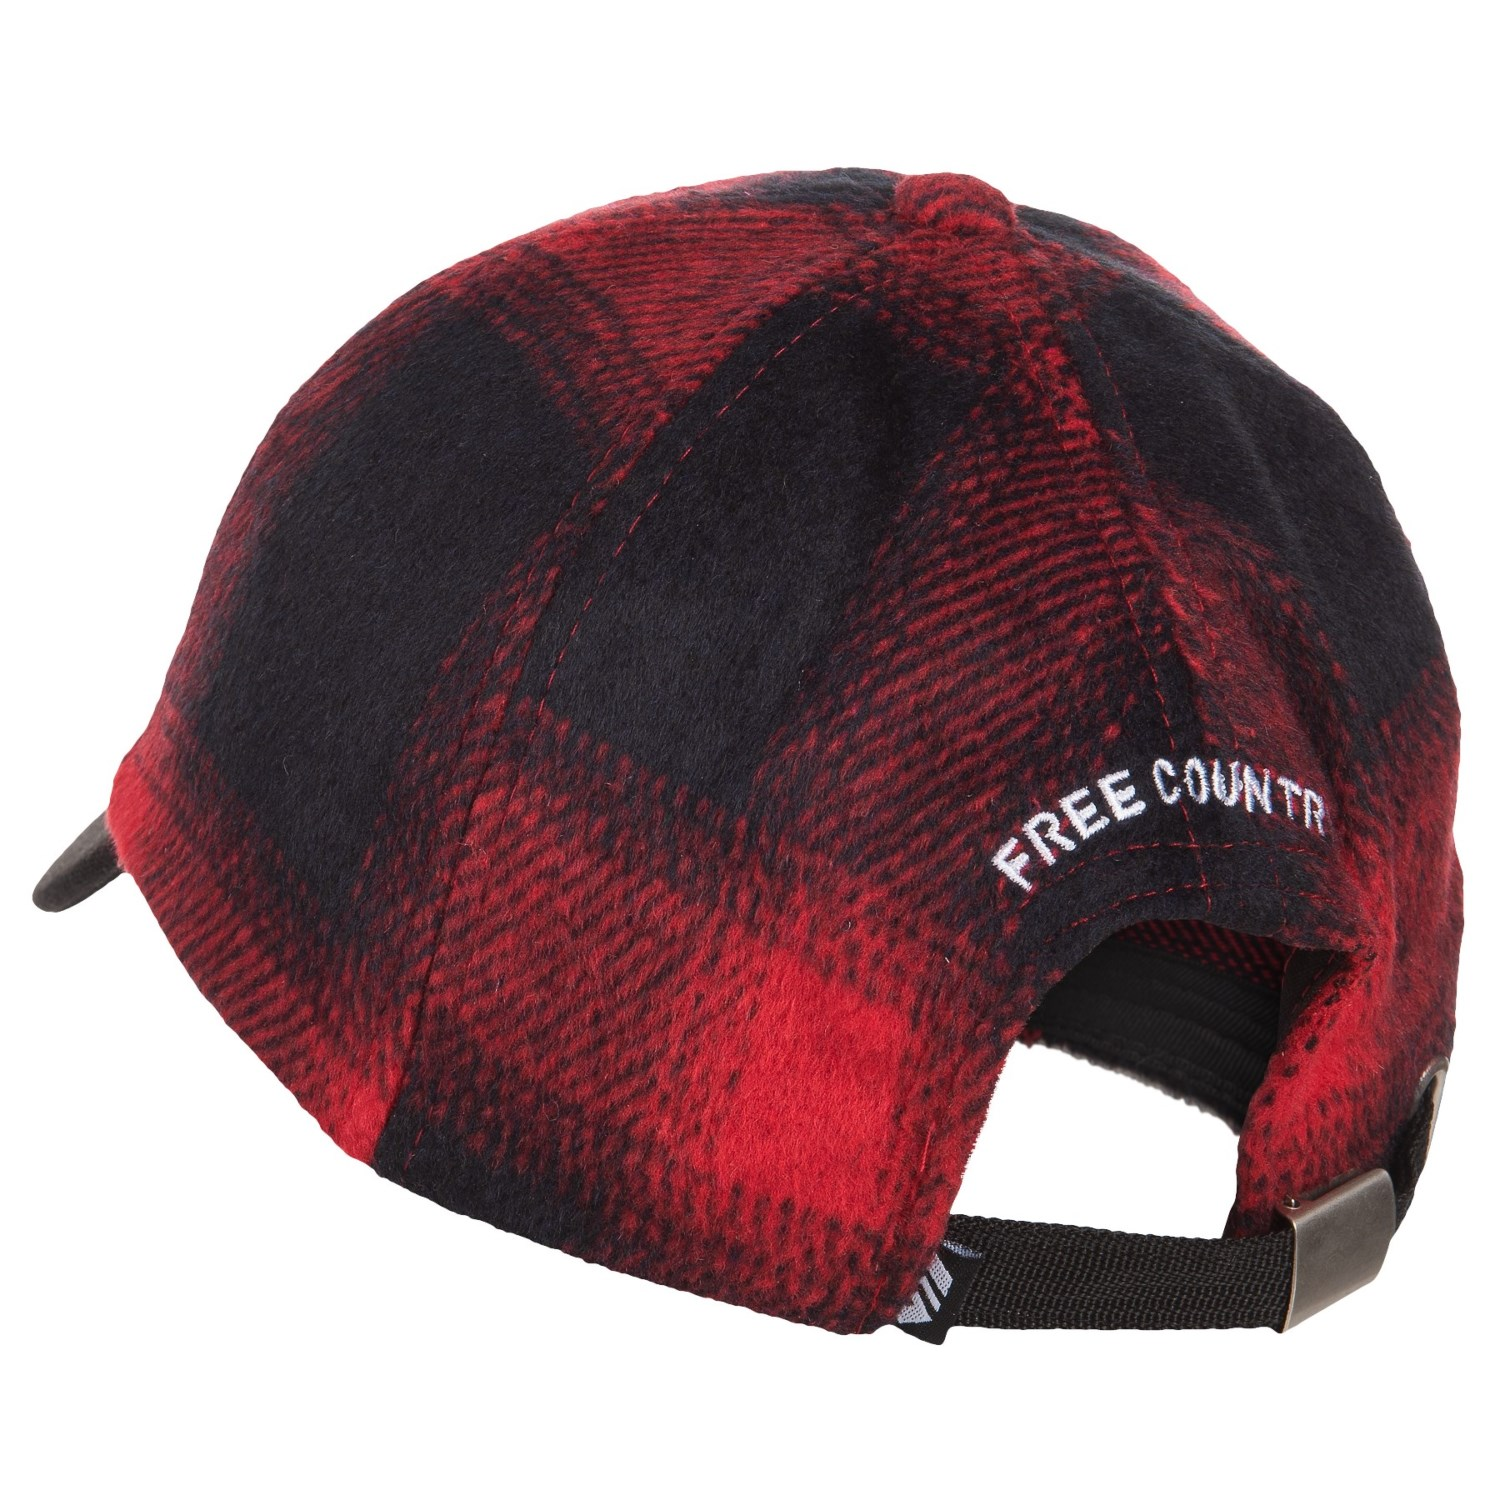 Free Country Wool-Blend Cap (For Men) - Save 75% 6226f7486842